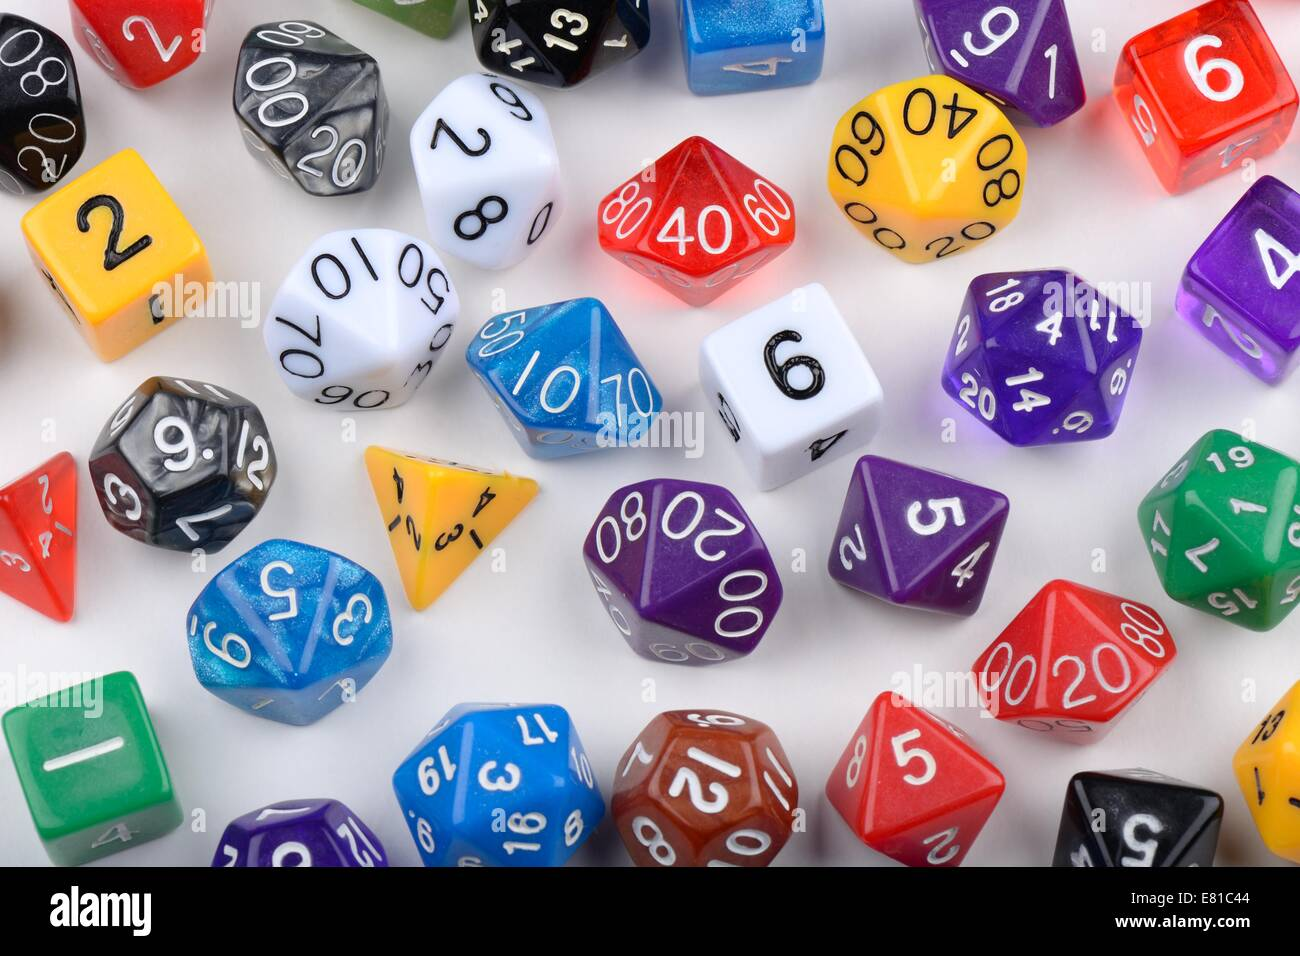 Random Number Generator Stock Photos Based Game All Shapes And Values Of Multi Sided Virtual Dice Image